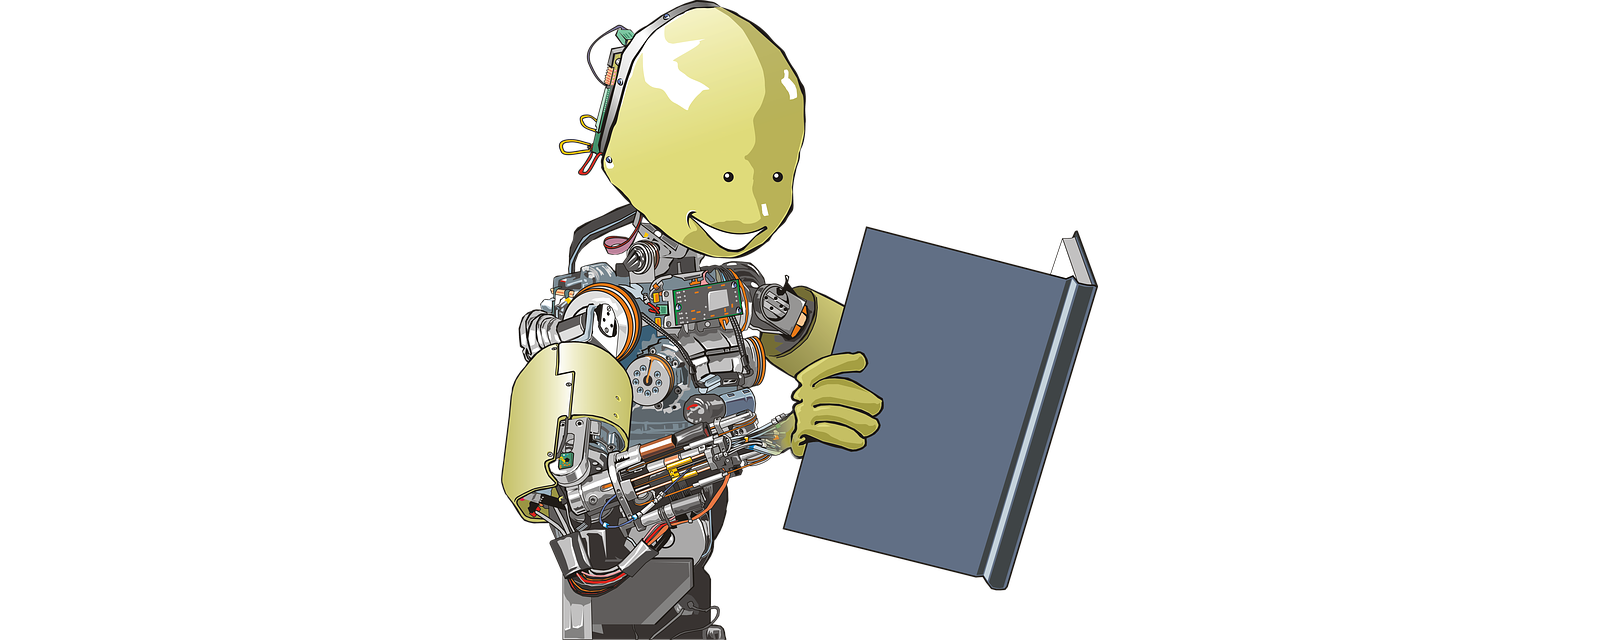 Drawing of a robot reading a book